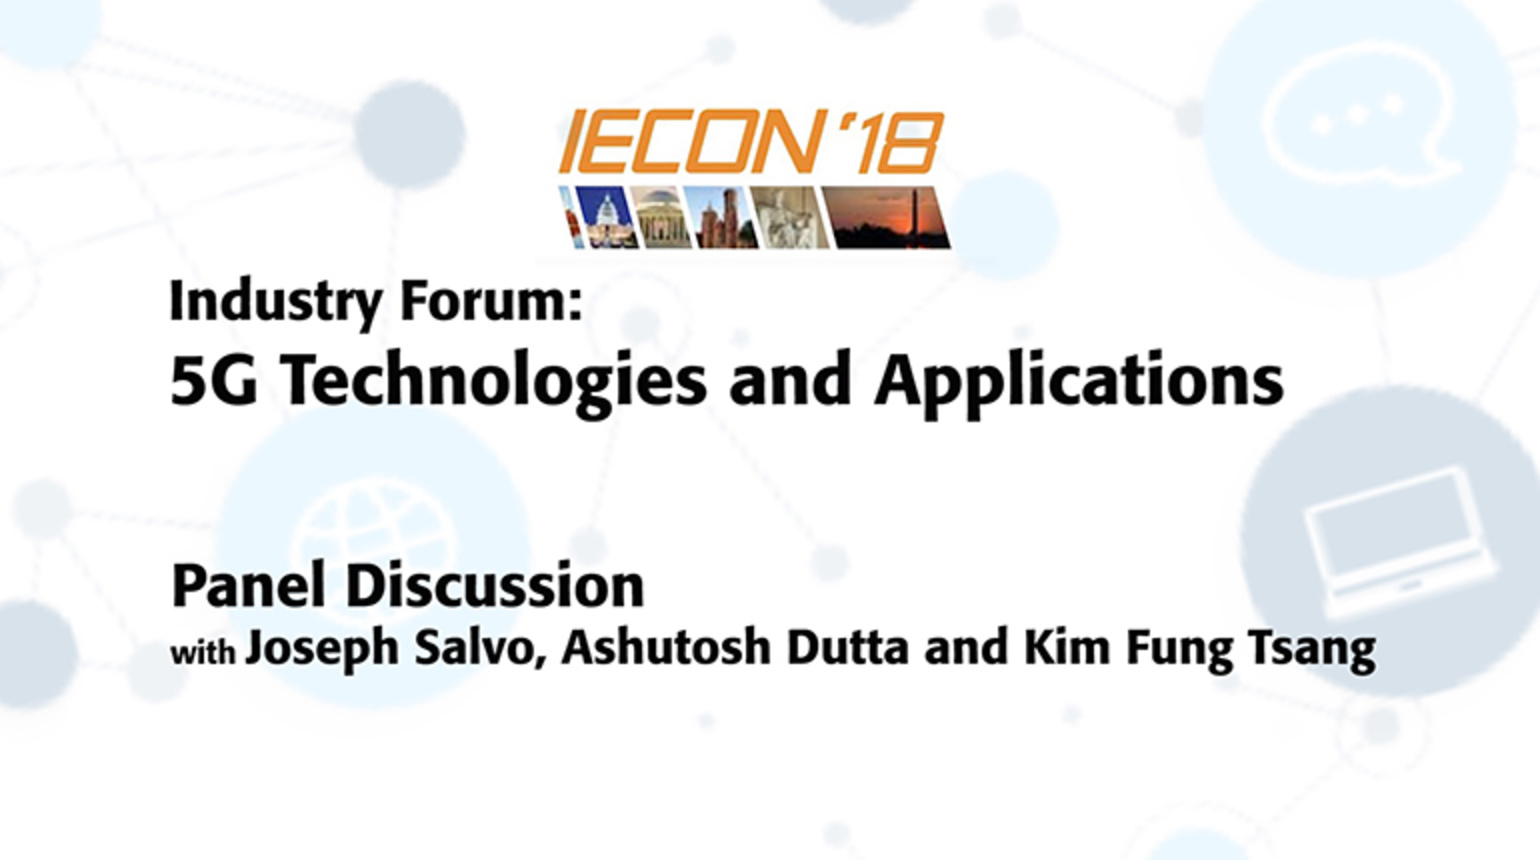 Industry Forum: Panel Discussion 5G Technologies and Applications, Joseph Salvo, Ashutosh Dutta, Kim Fung Tsang  - IECON 2018